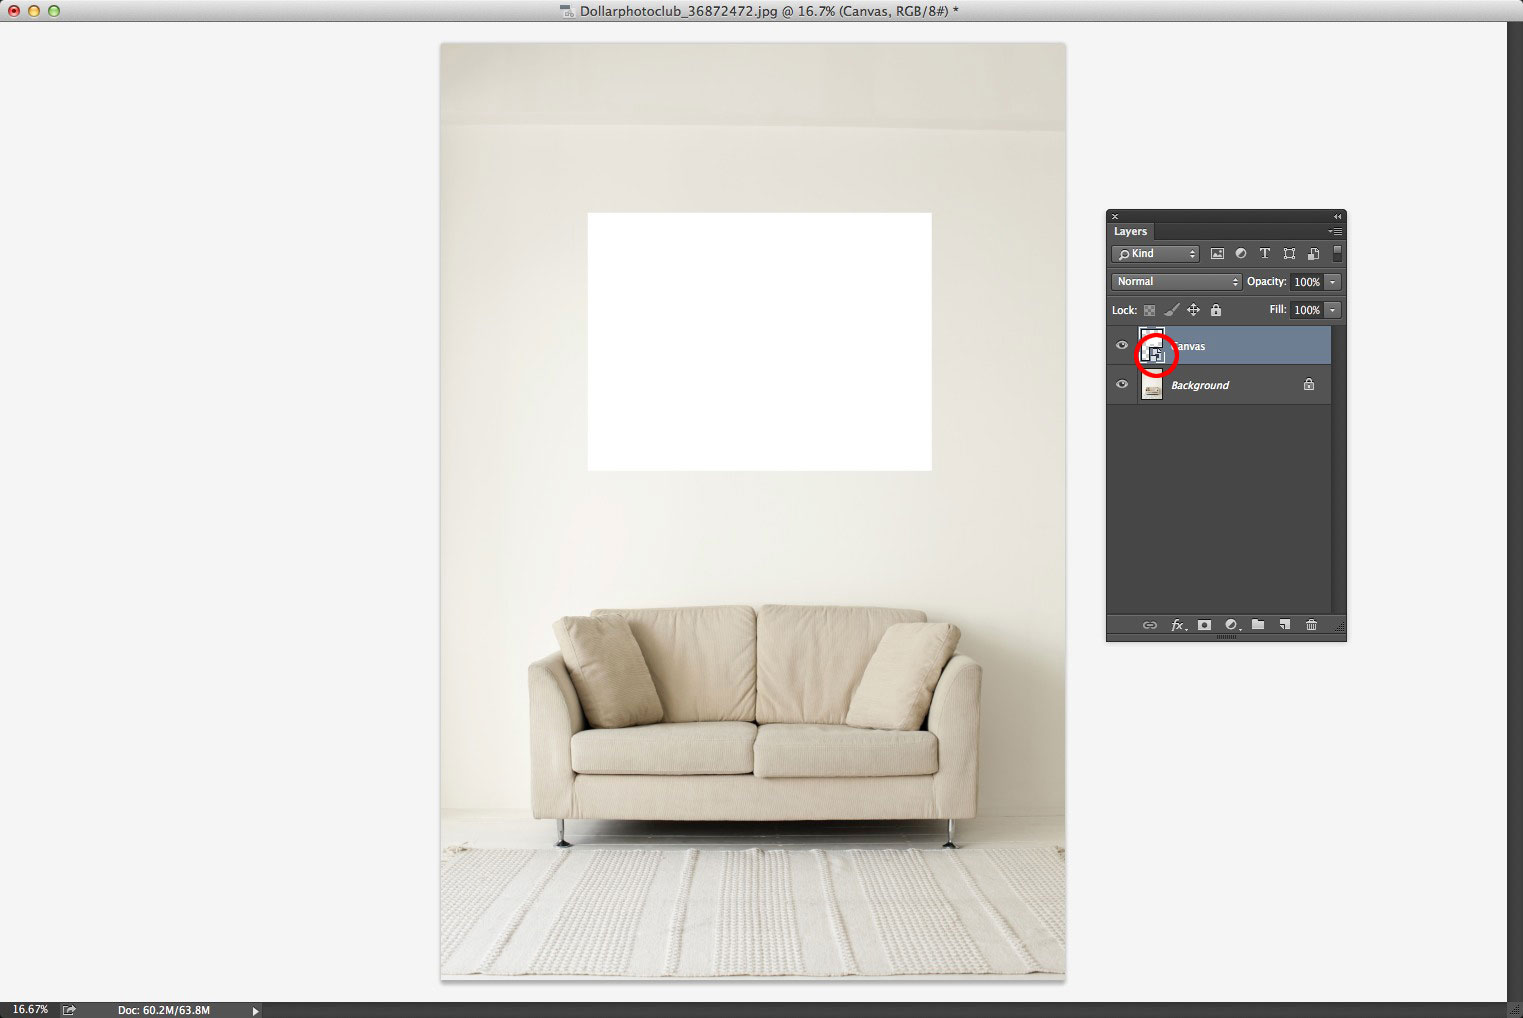 Creating a Smart Object